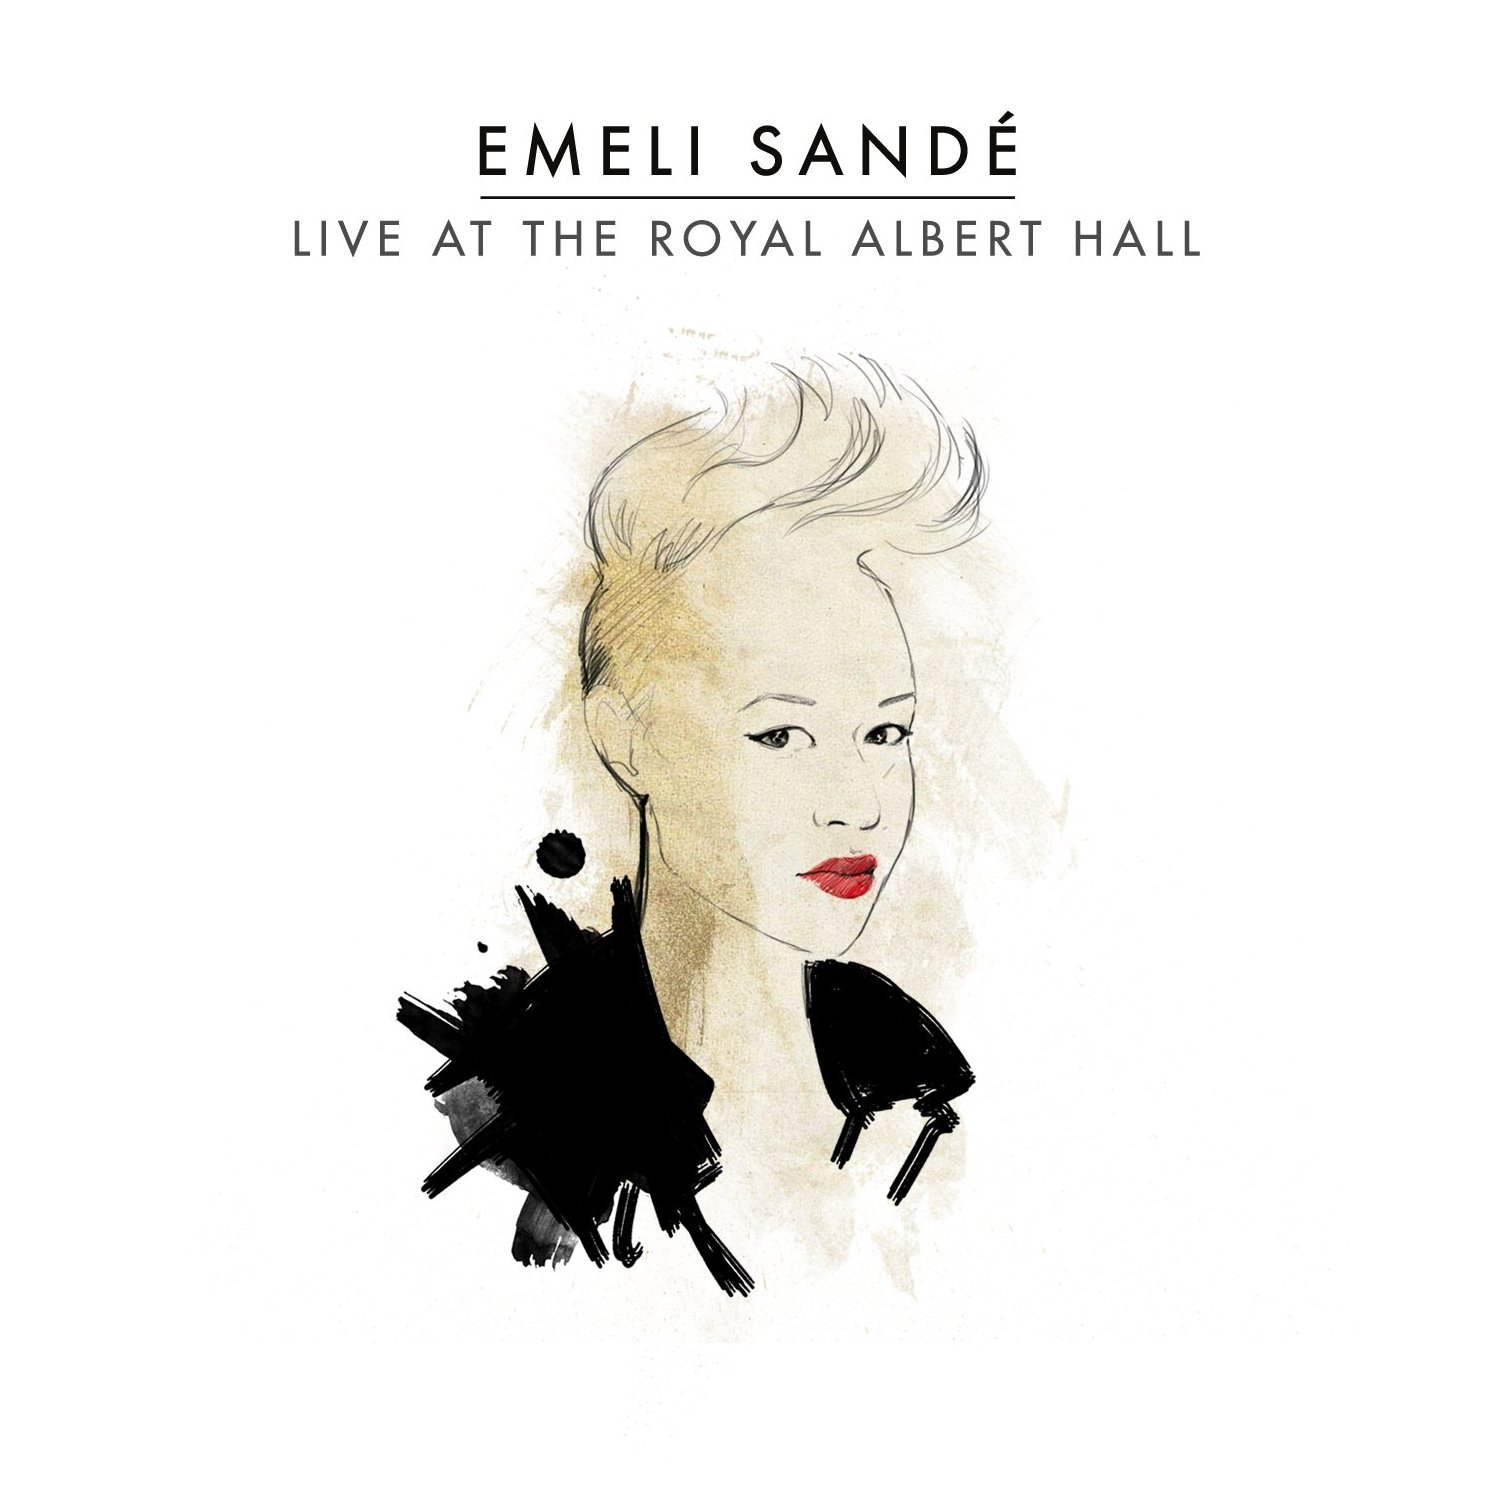 Emeli Sande - Live at The Royal Albert Hall (2013) [MULTI]